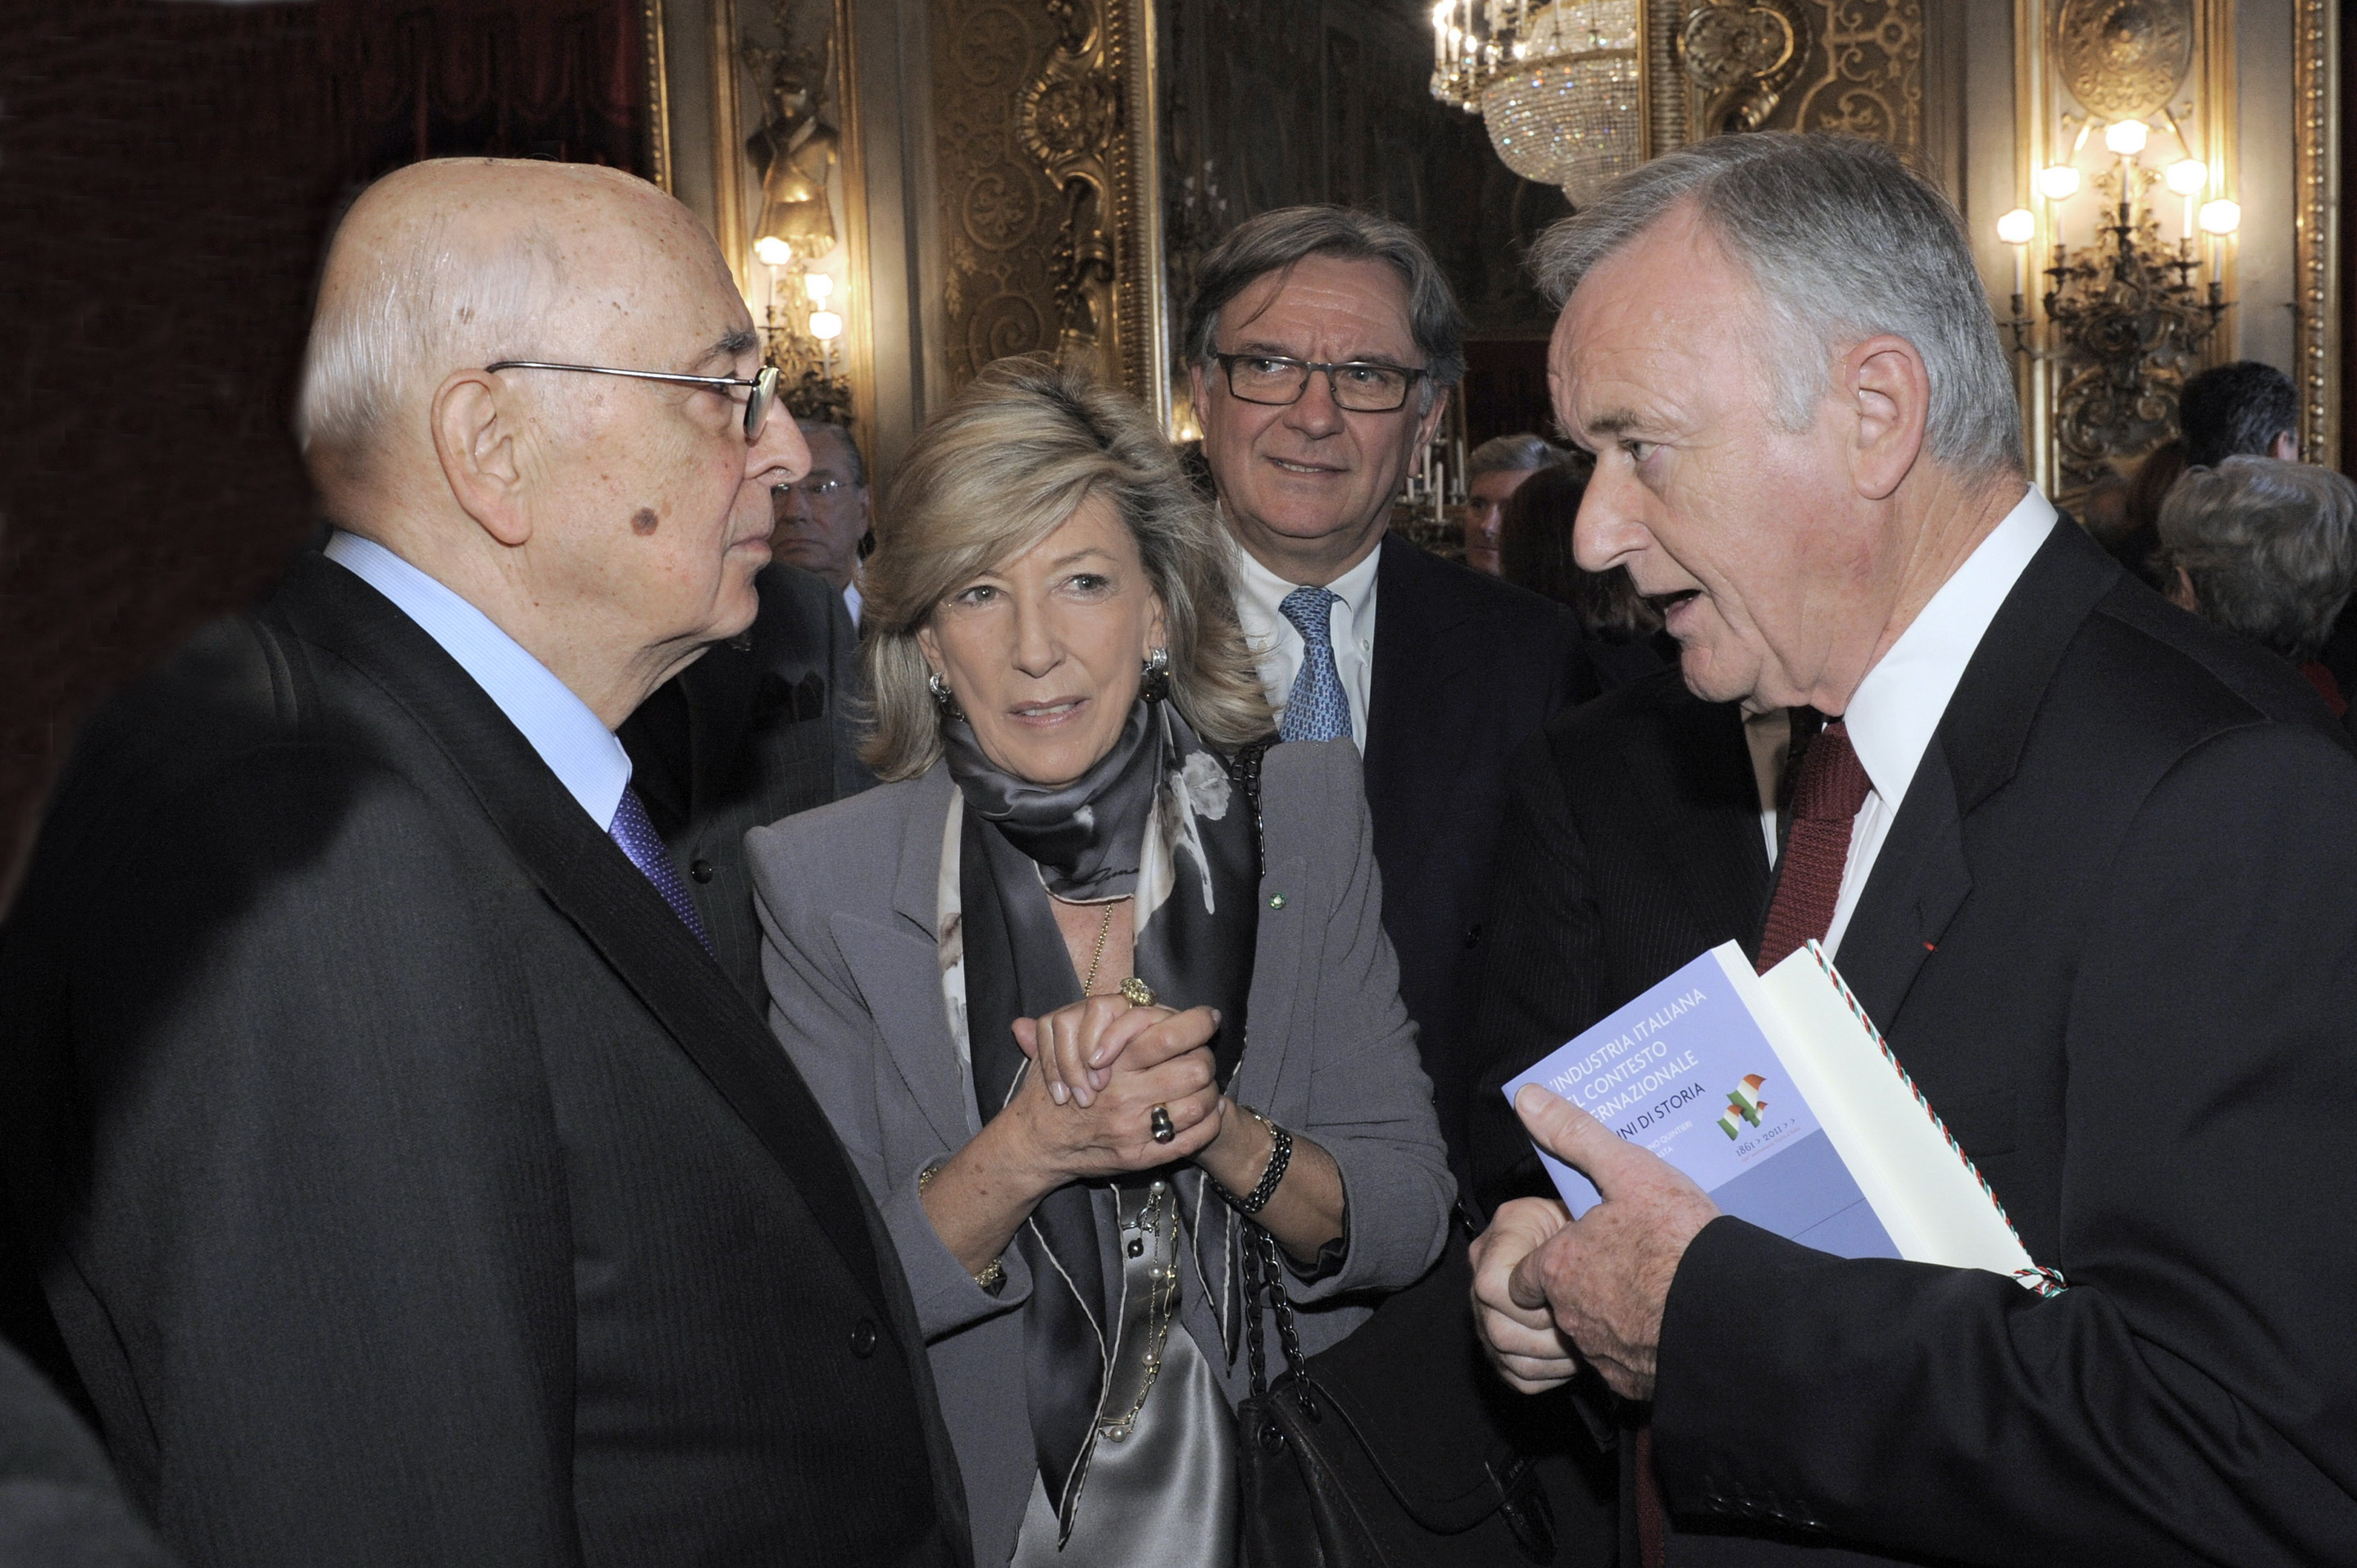 Leonardo Committee Prize awarded at Quirinal Palace Ceremony on 25 January 2012